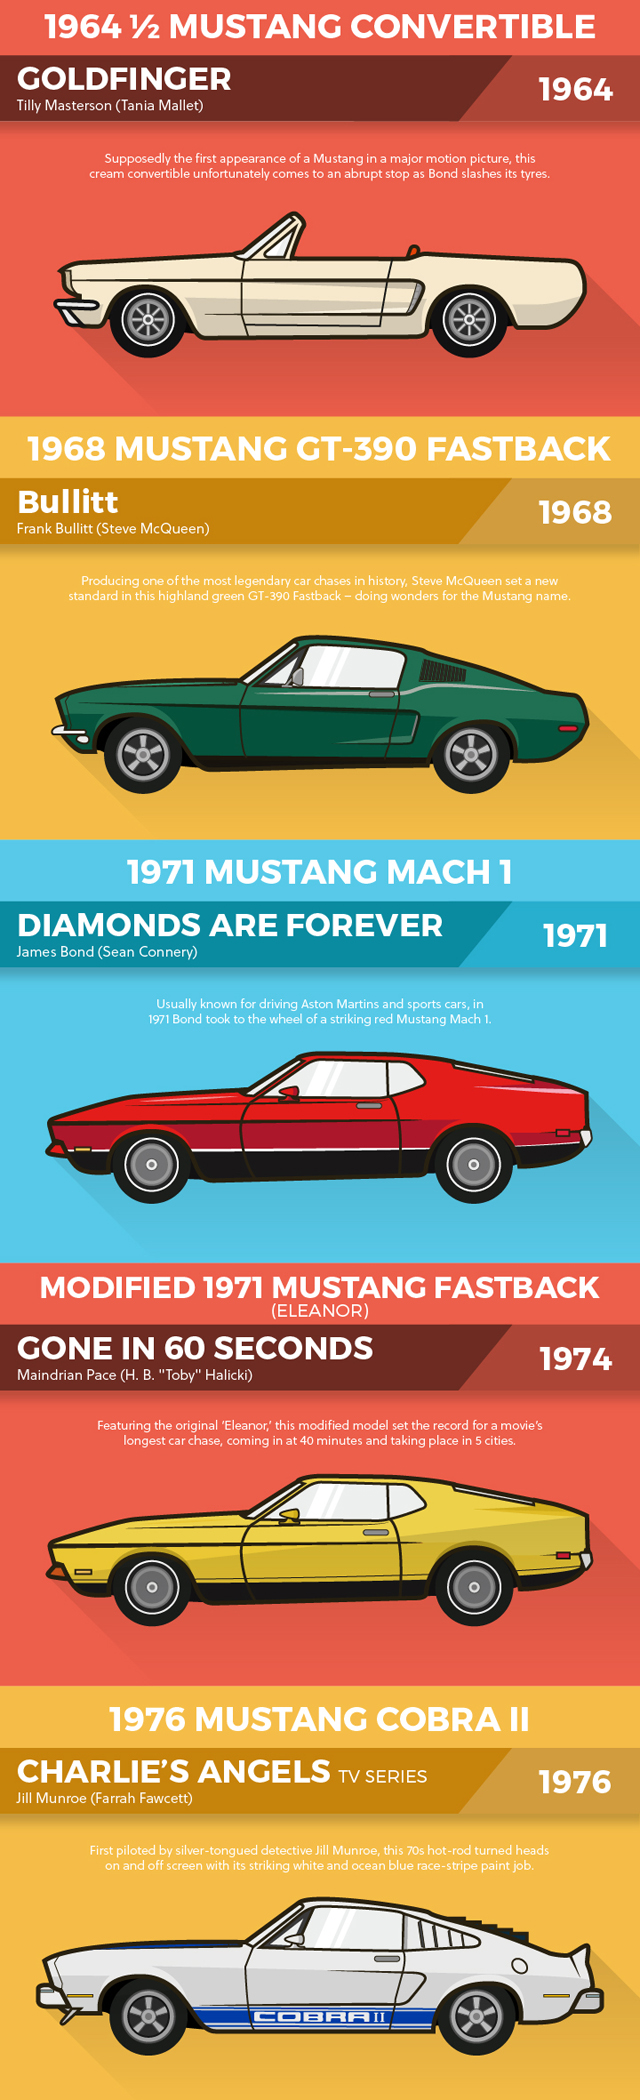 The Most Iconic Mustangs In Film